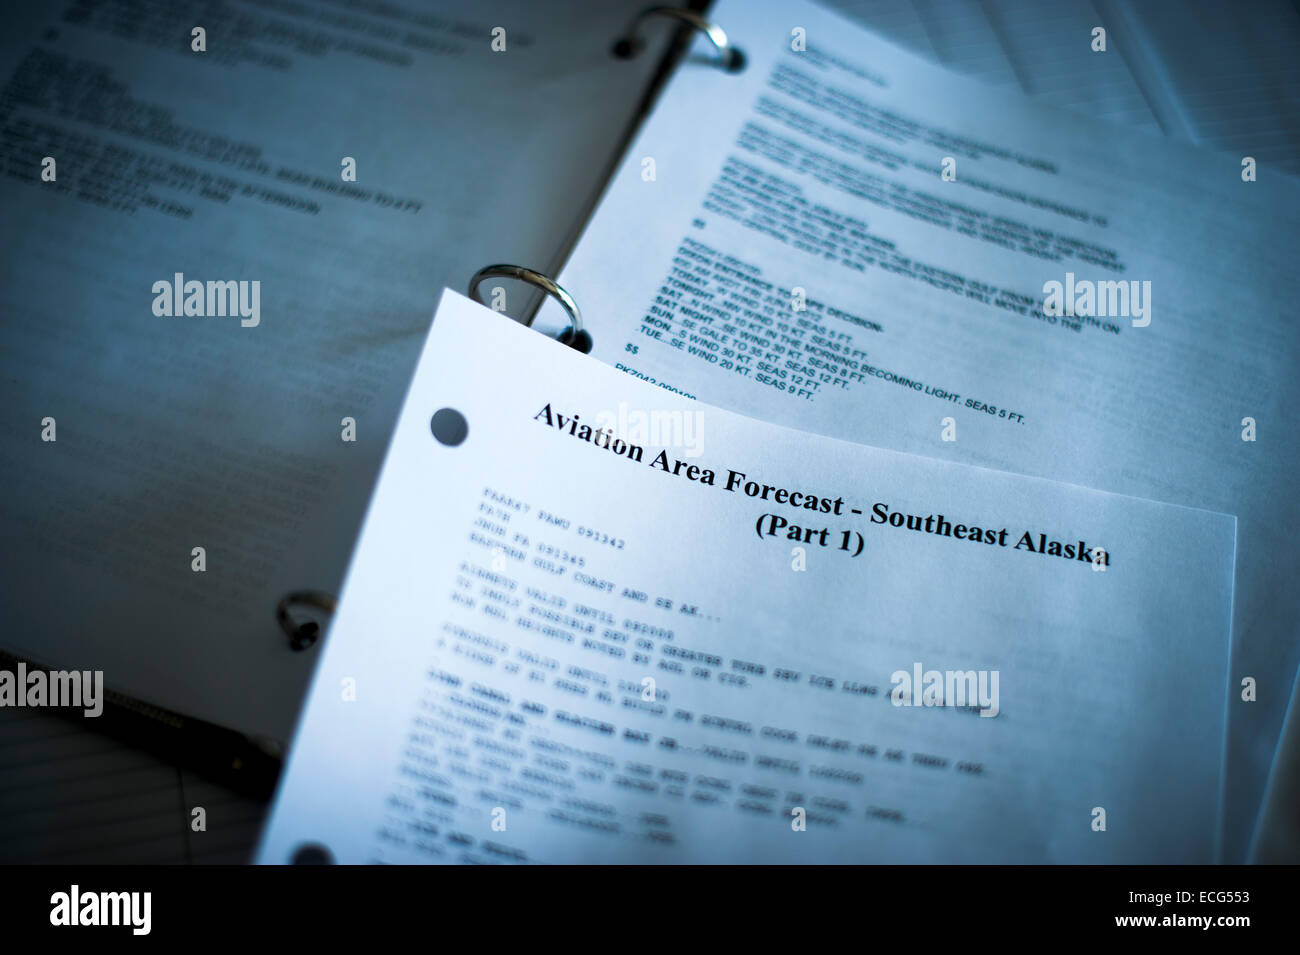 Printed marine forecast in Southeast Alaska in a three-ring binder. - Stock Image